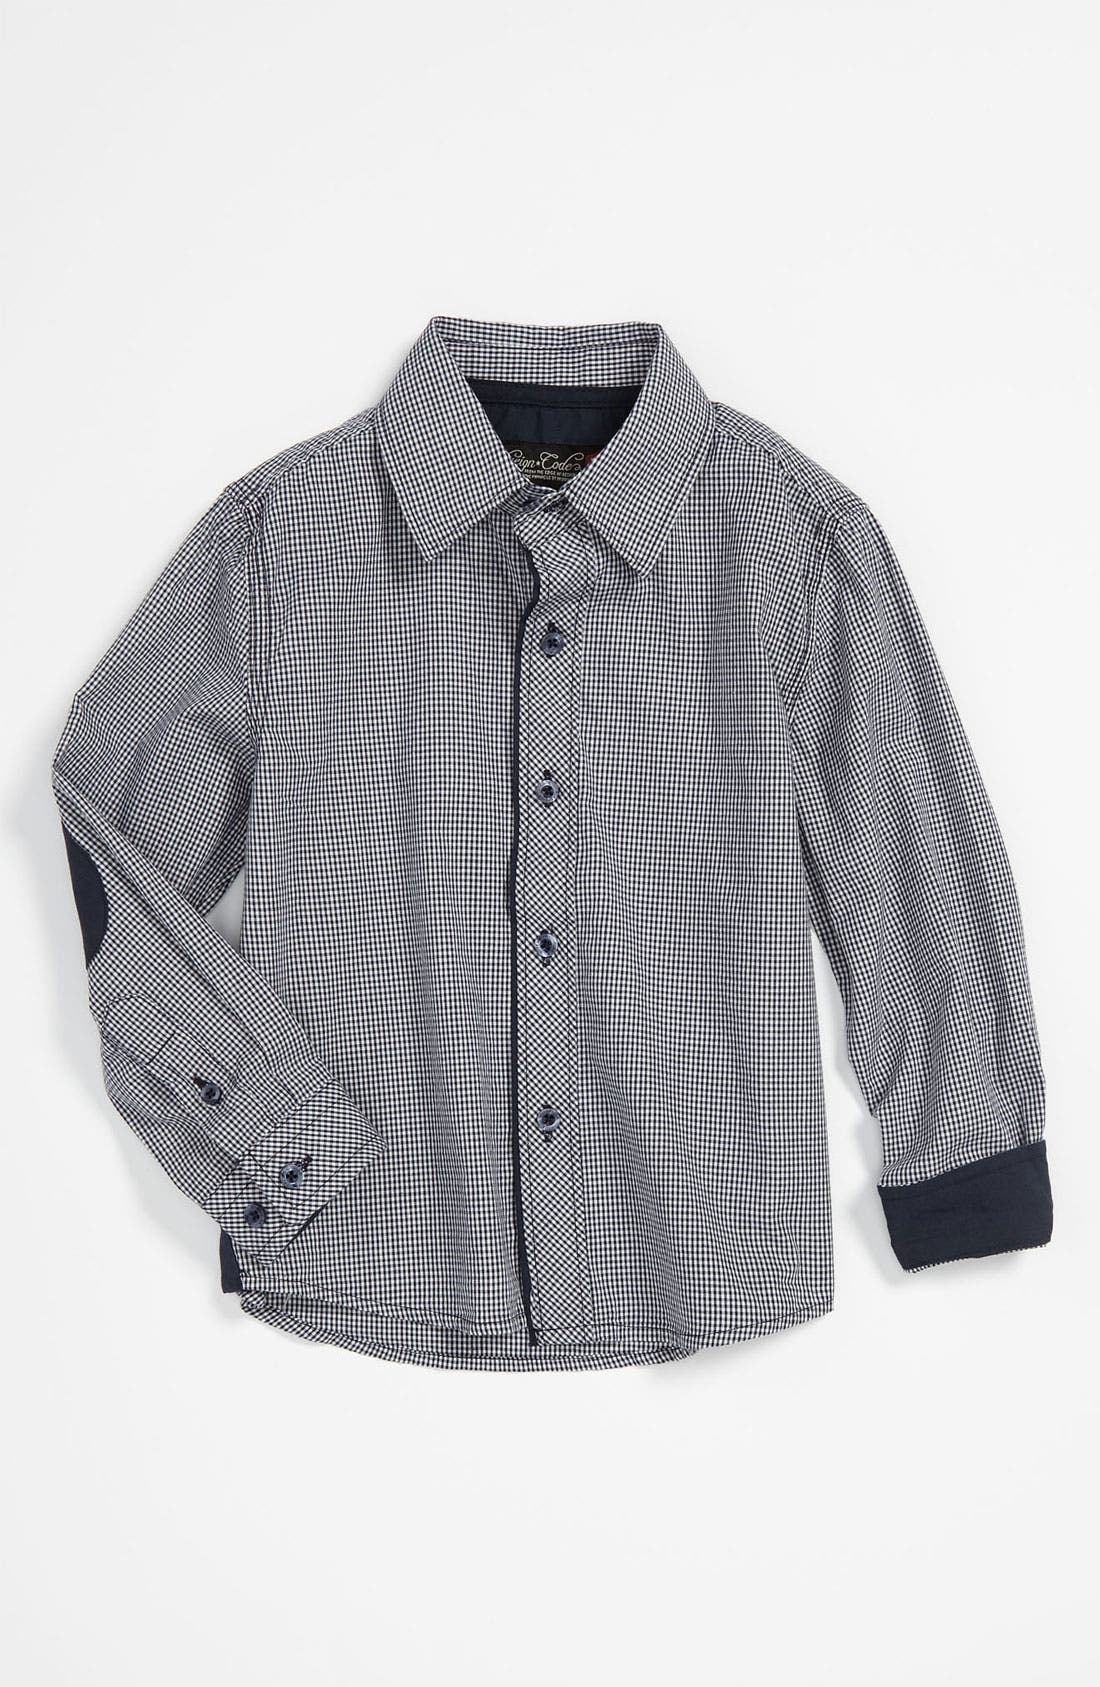 Main Image - Sovereign Code Gingham Shirt (Infant)